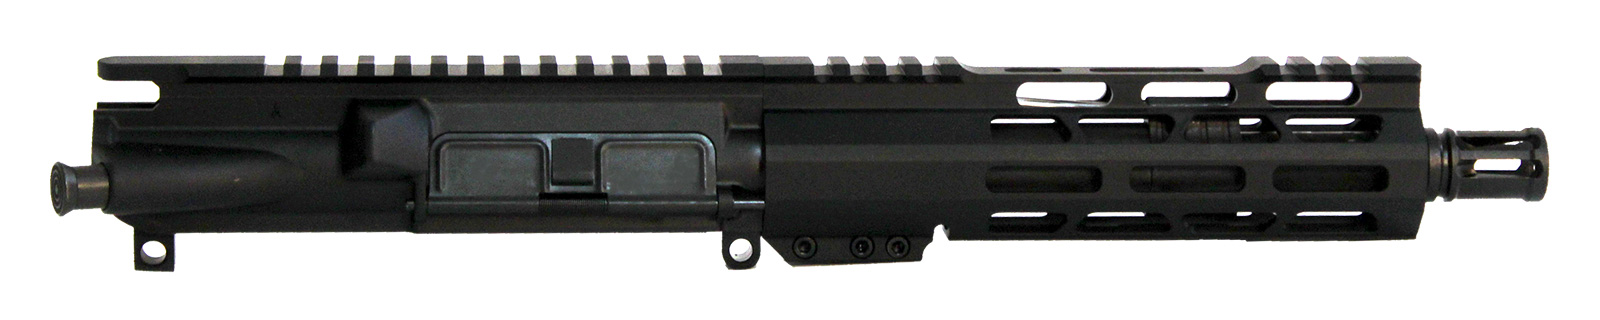 ar15-upper-assembly-7-5-inch-7-62x39-110-m-lok-160654